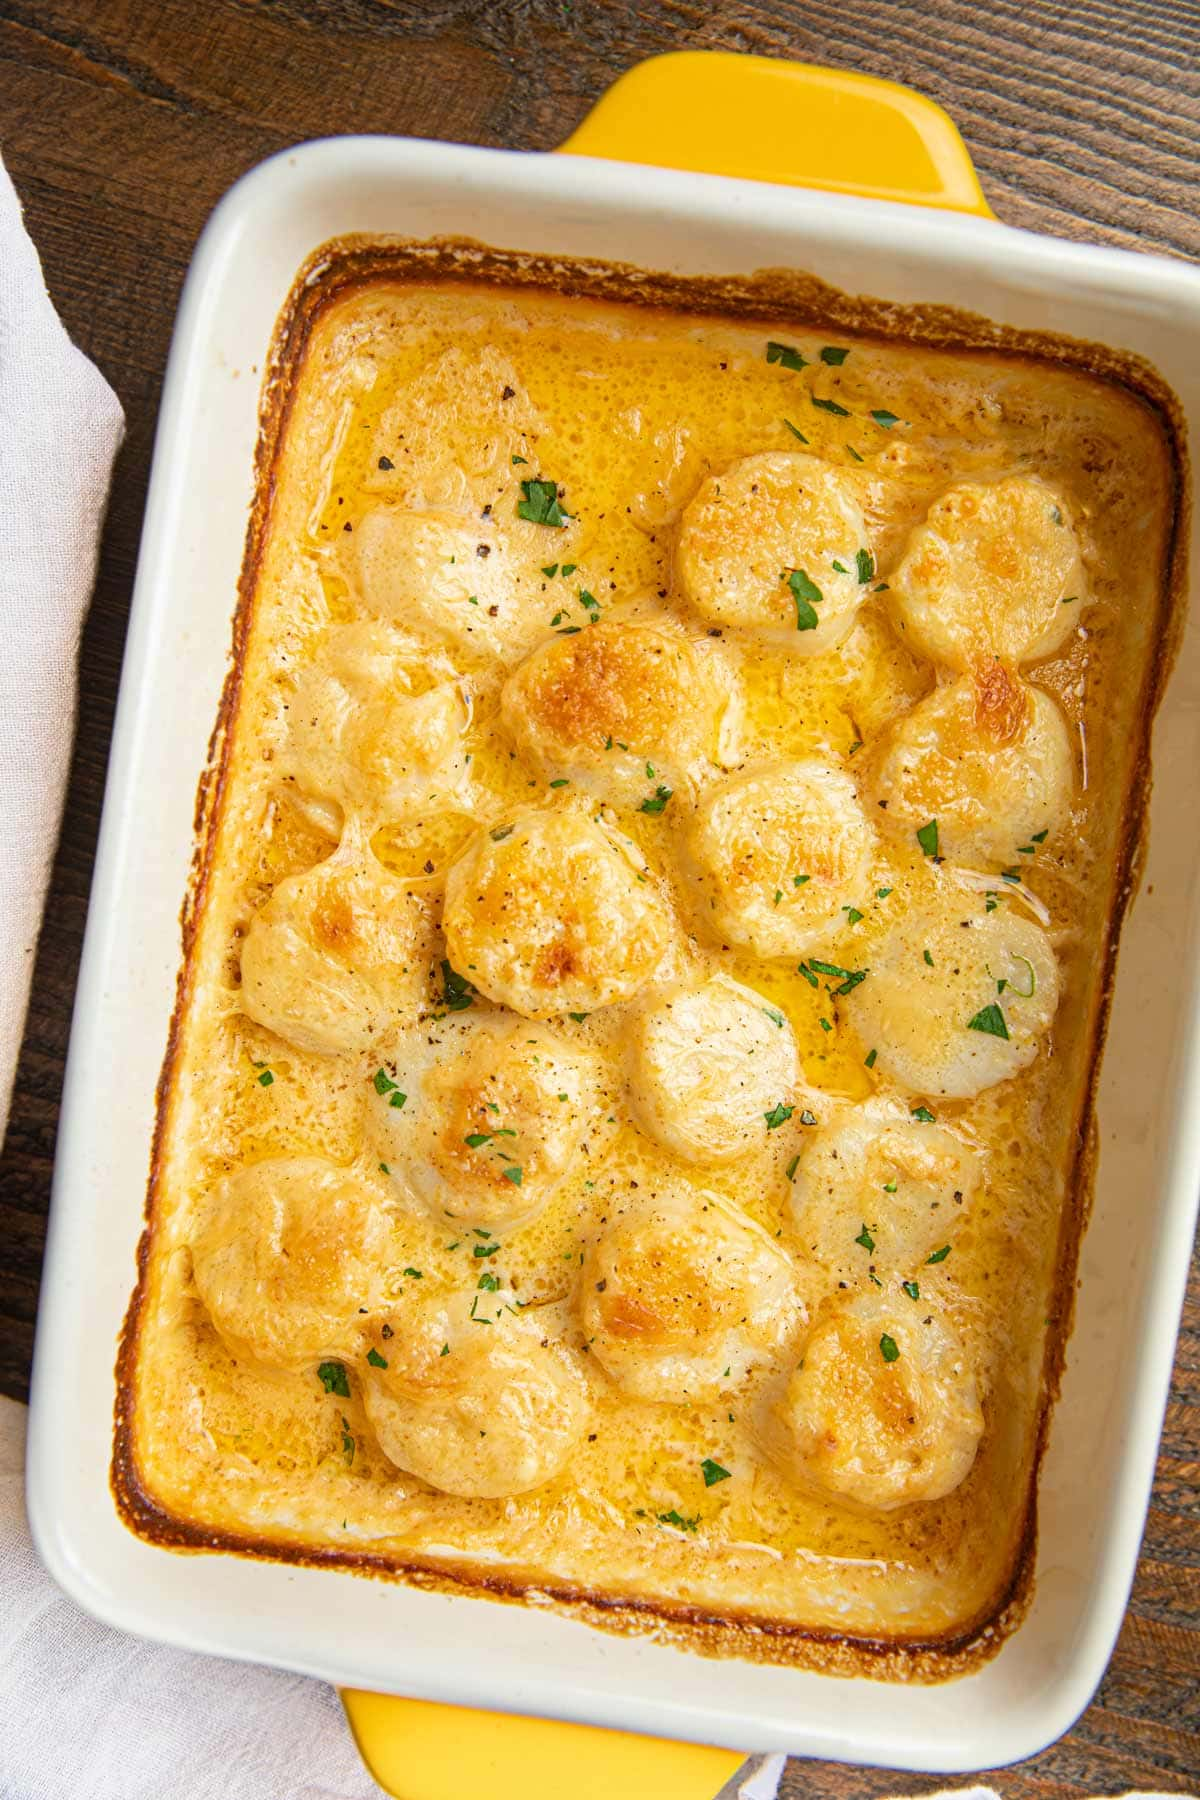 Scallop Gratin in white and yellow baking dish